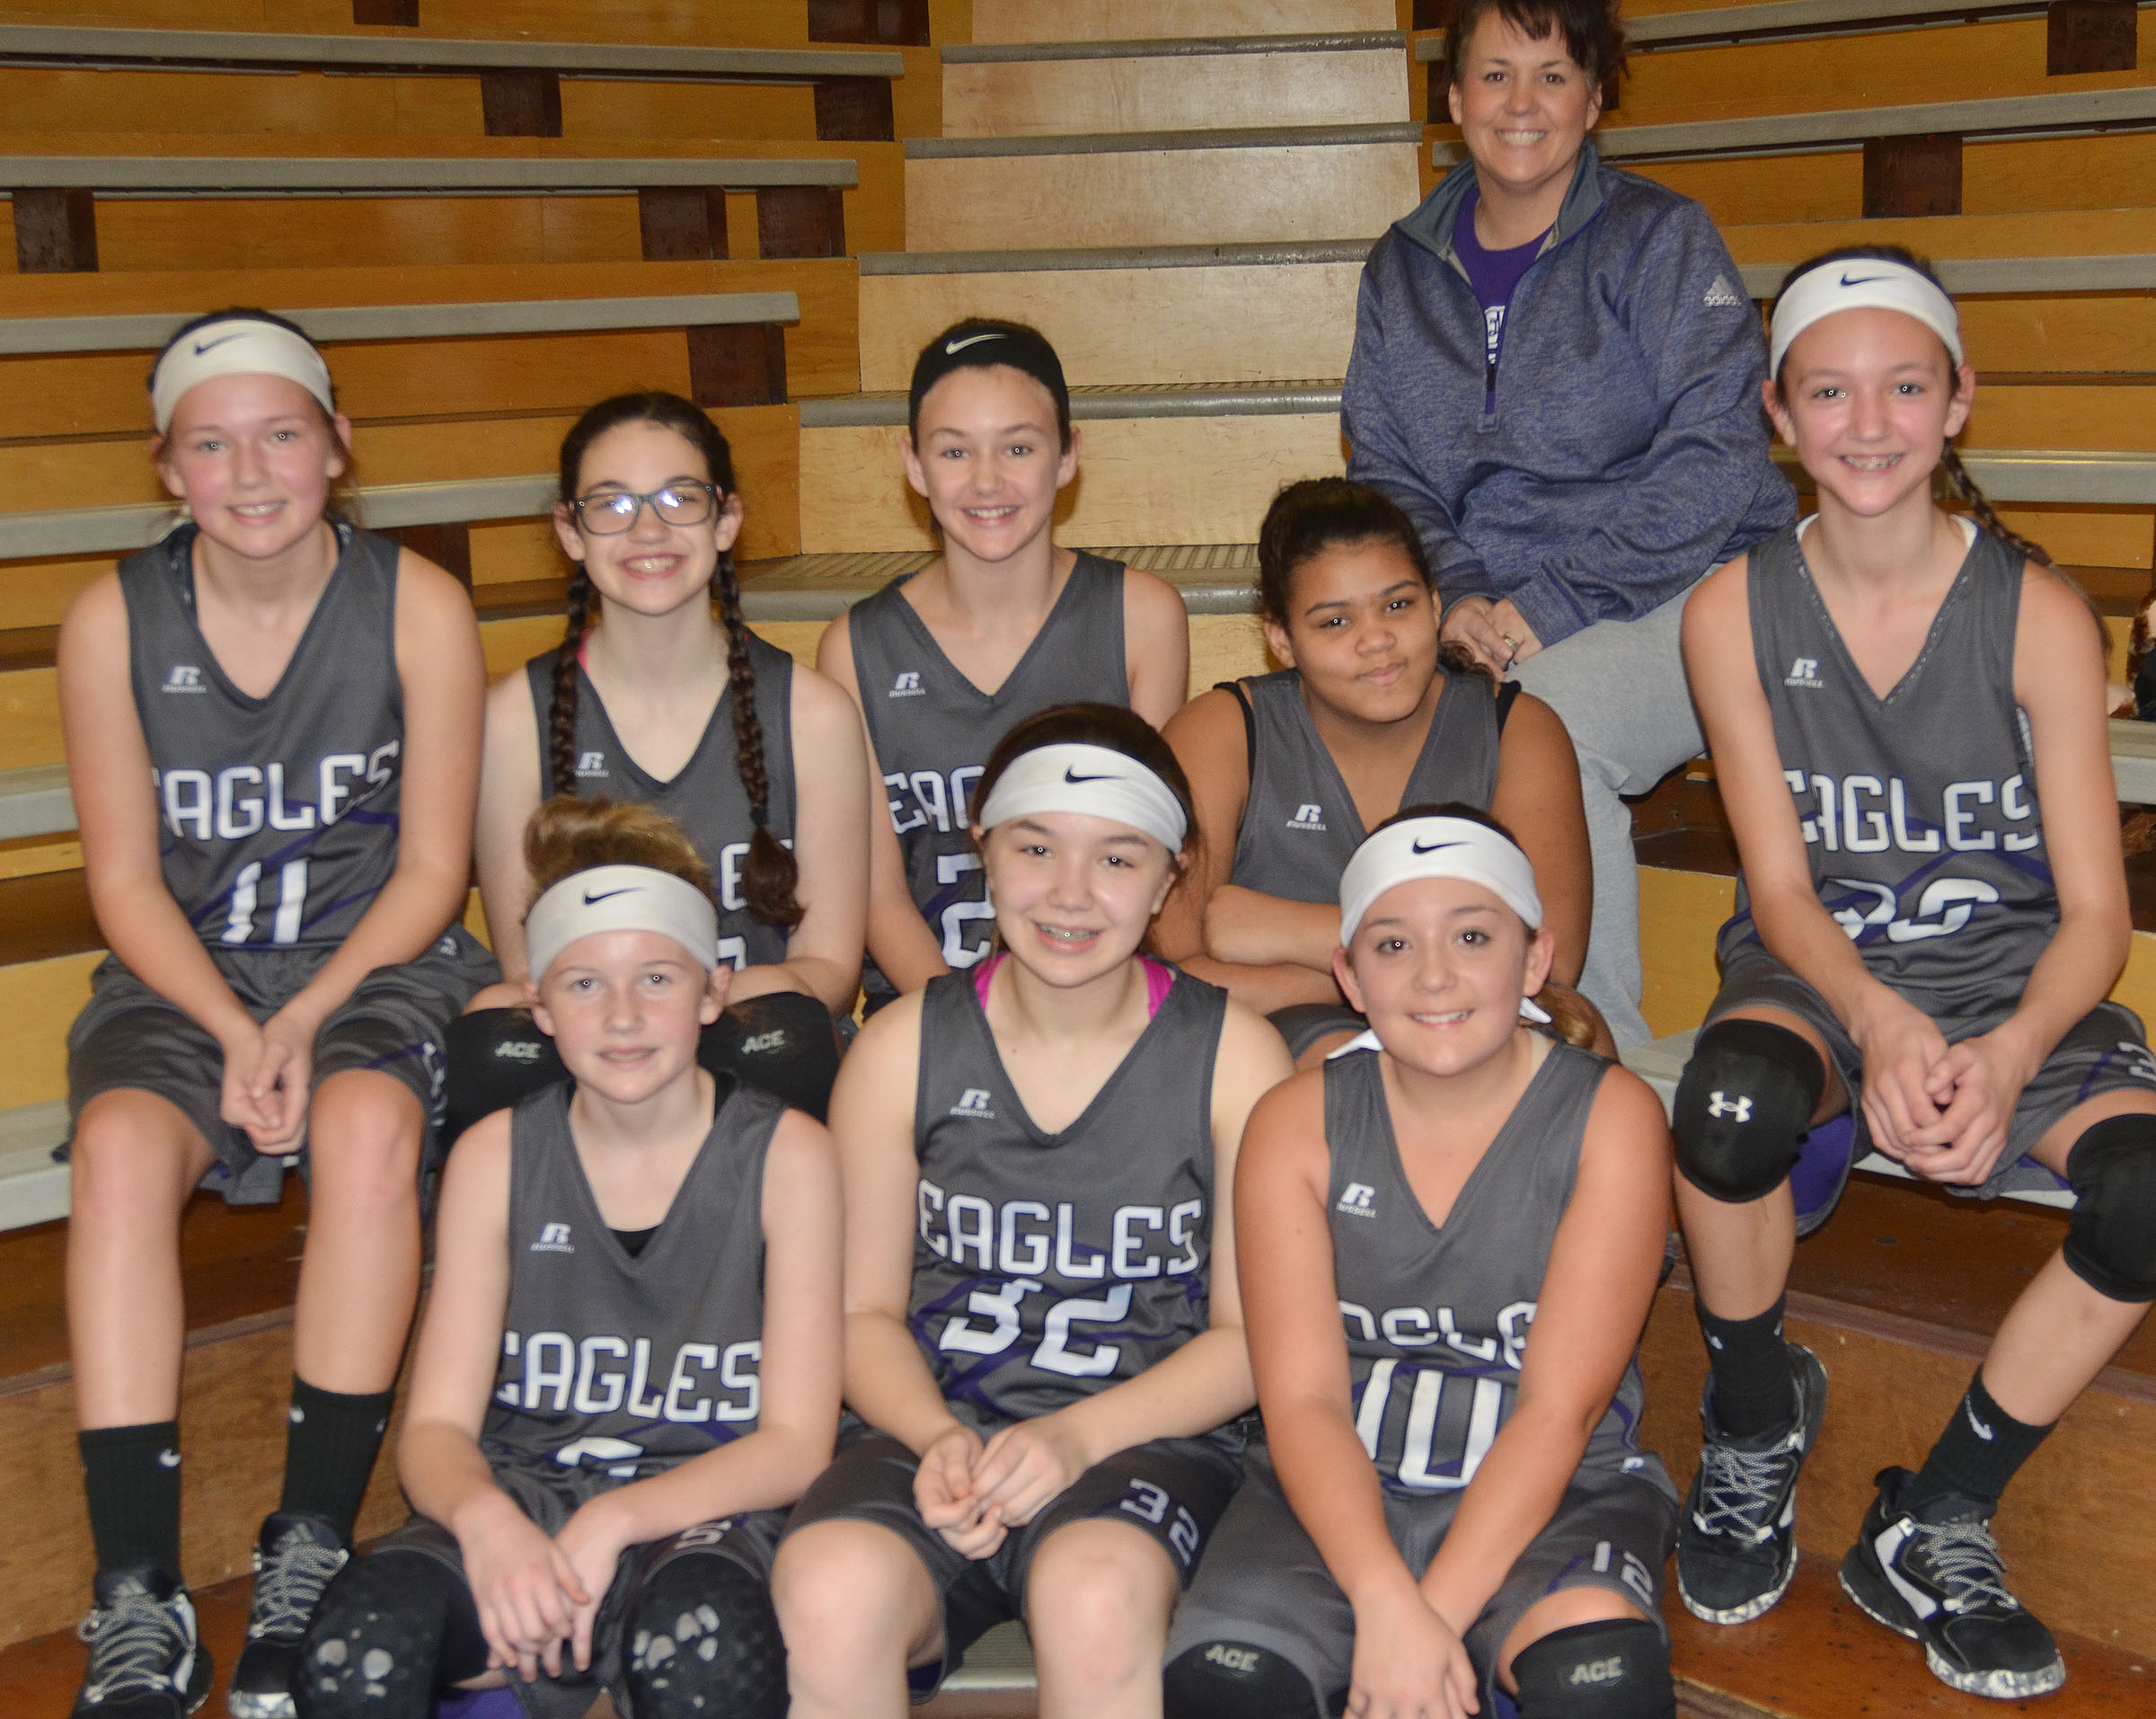 CMS sixth-grade girls' winter basketball team members are, from left, front, sixth-grader Dakota Slone, seventh-grader Olivia Fields and sixth-grader Briana Davis. Back, sixth-graders Breanna Humphress, Mary Russell, Haylee Allen, Asia Barbour and Bri Hayes. In back is coach Kathy England.